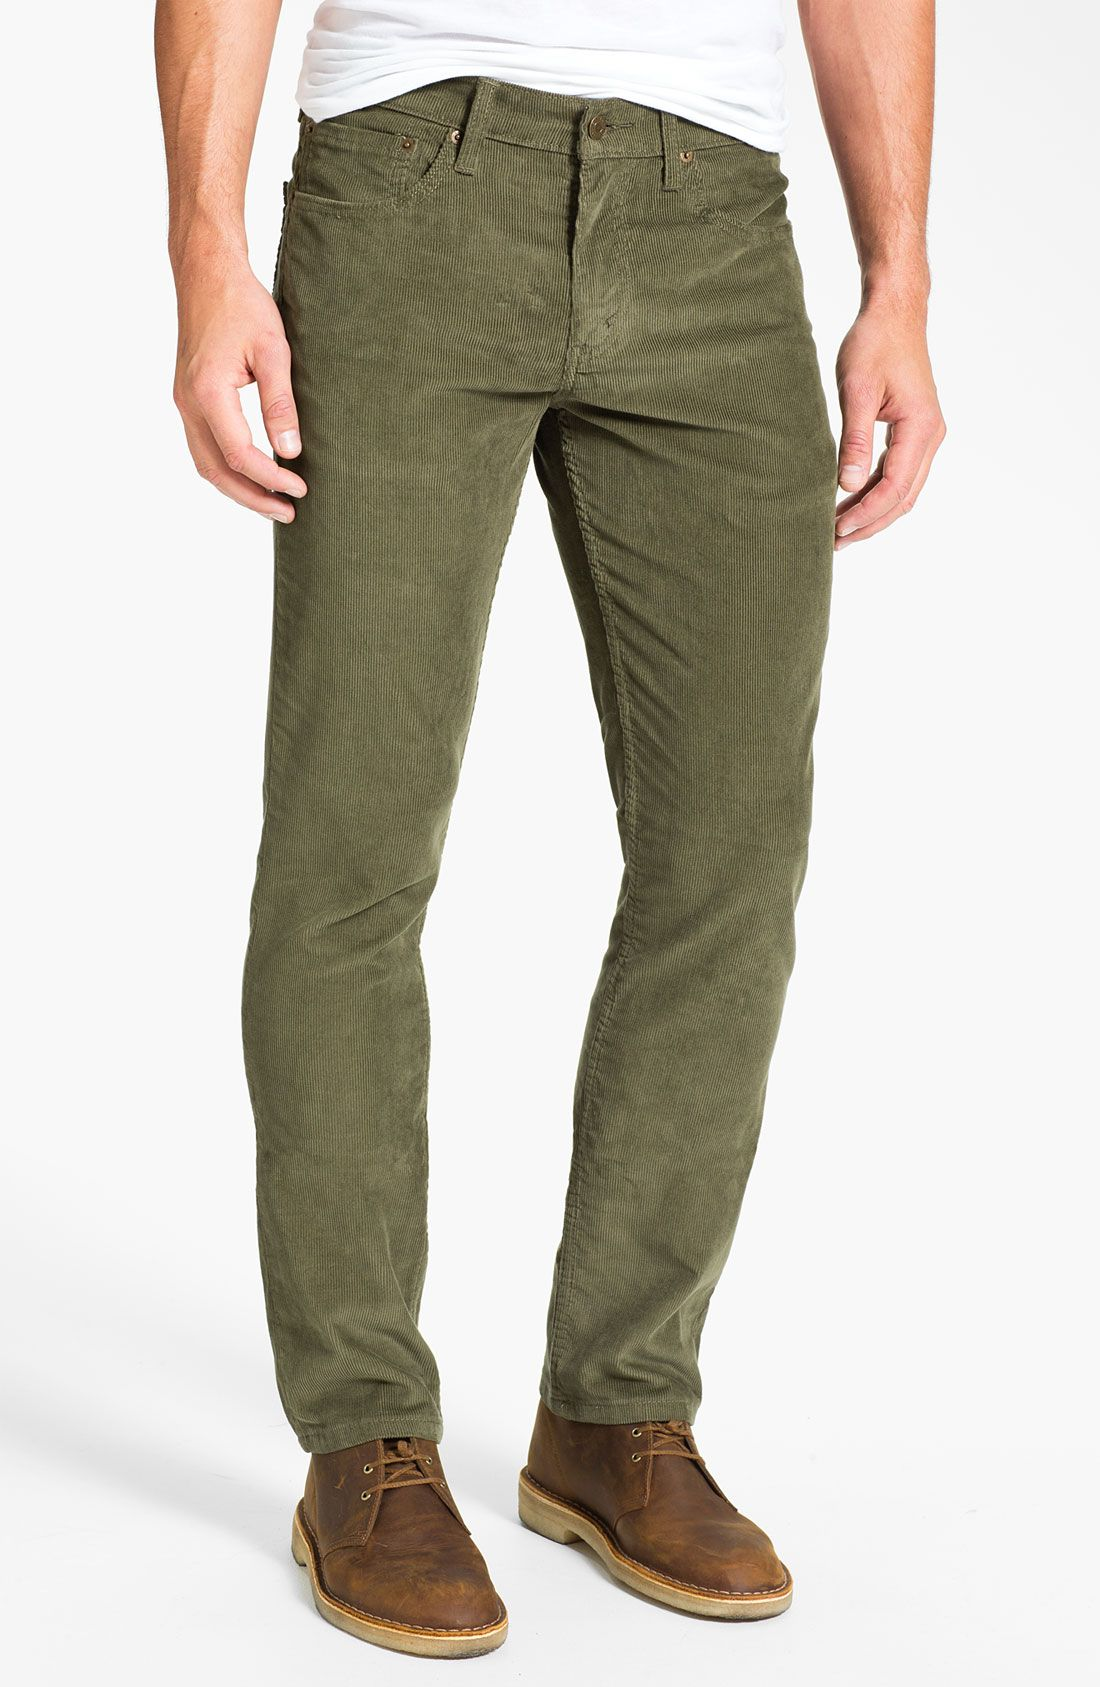 Mens Corduroy Pants & Trousers While styles have evolved through the decades, some fashions have remained timelessly cool. Despite the fads of couture, corduroy pants have endured as a staple of both style and comfort in men's fashion.